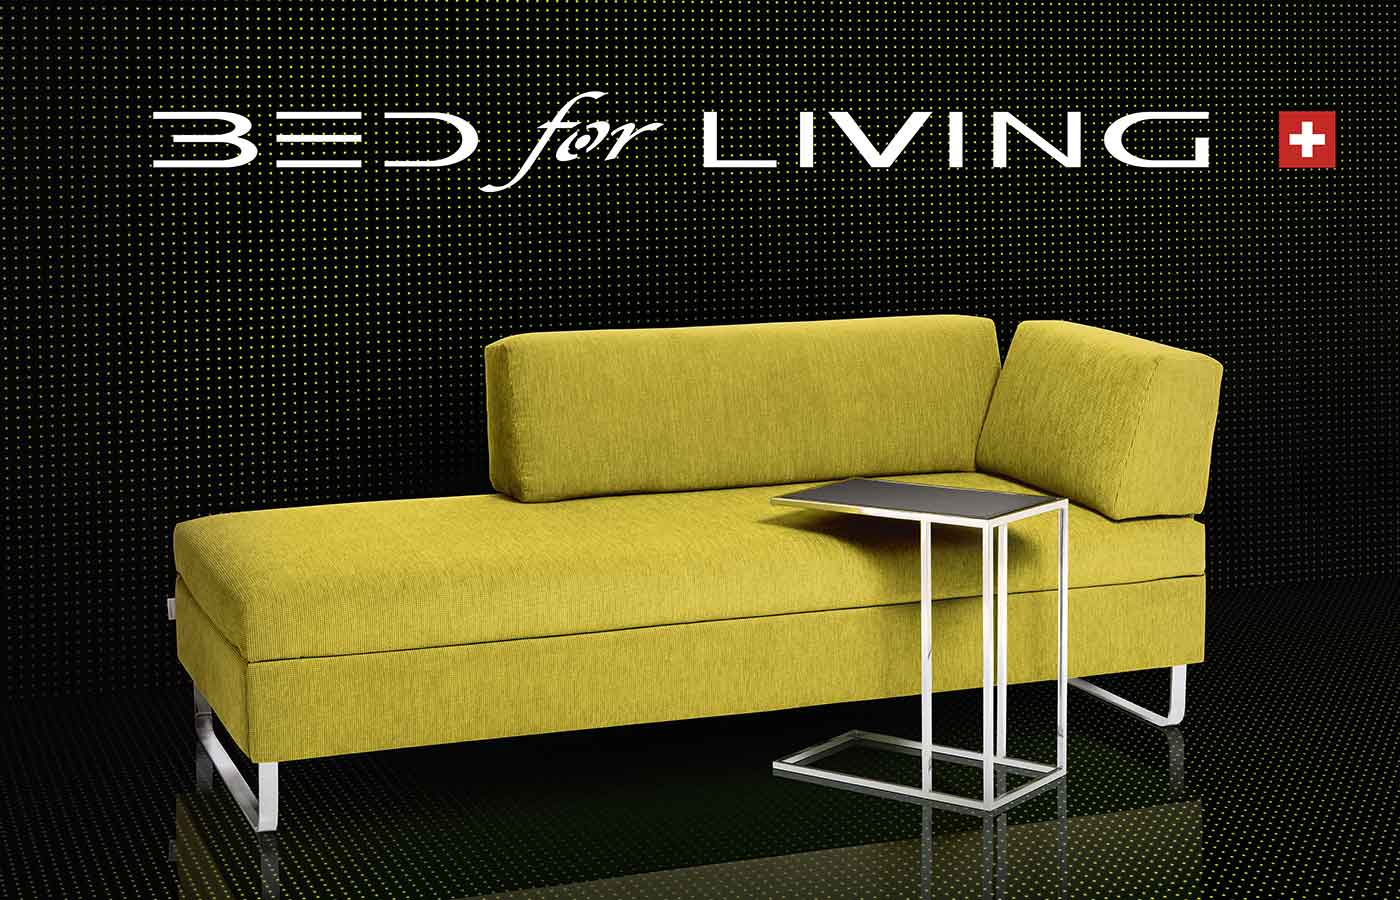 Bettsofa Bed for Living